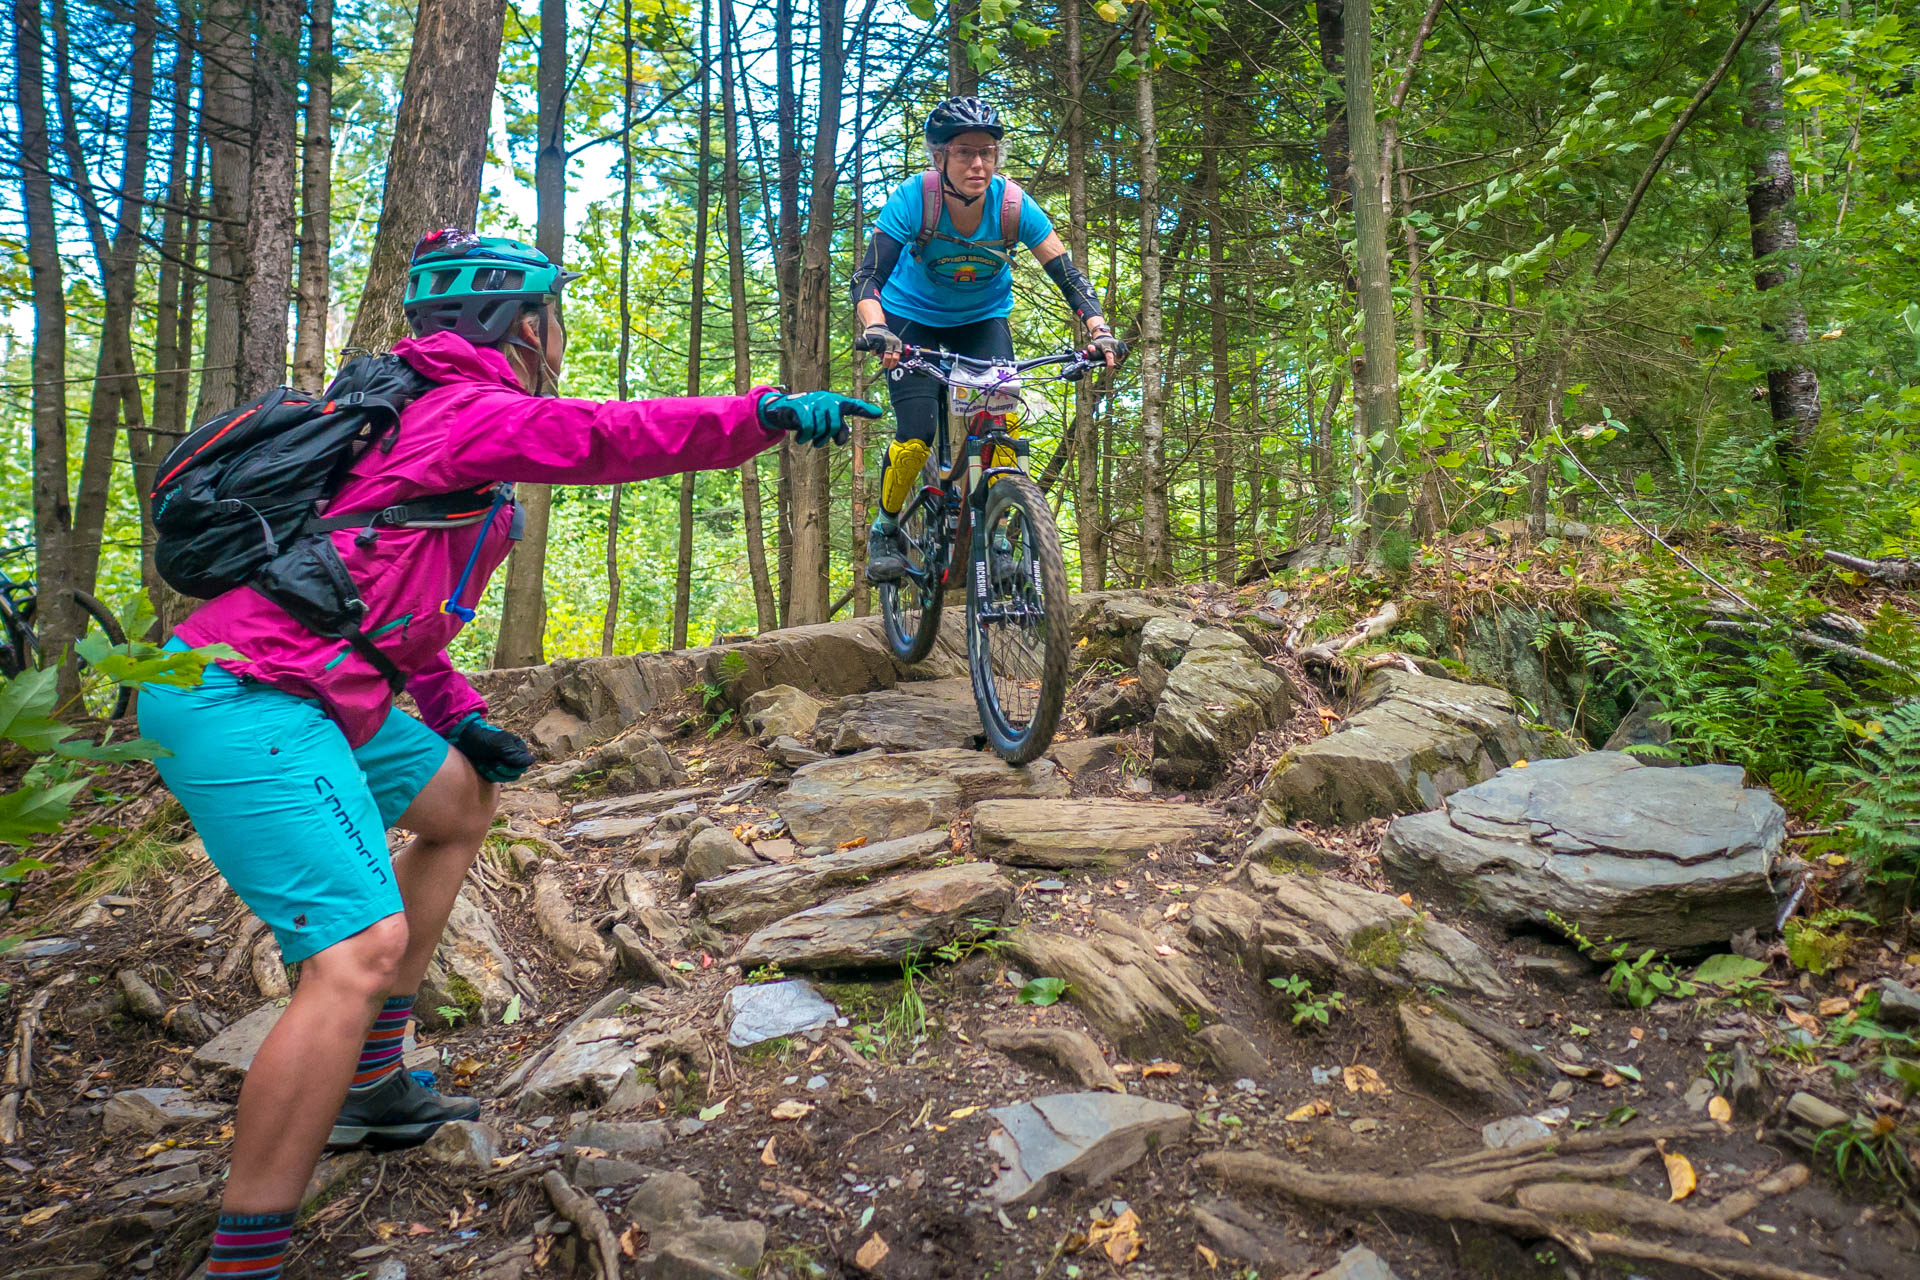 Coach Lindsey helps riders develop confidence on new terrain | Ladies AllRide Clinic East Burke, VT